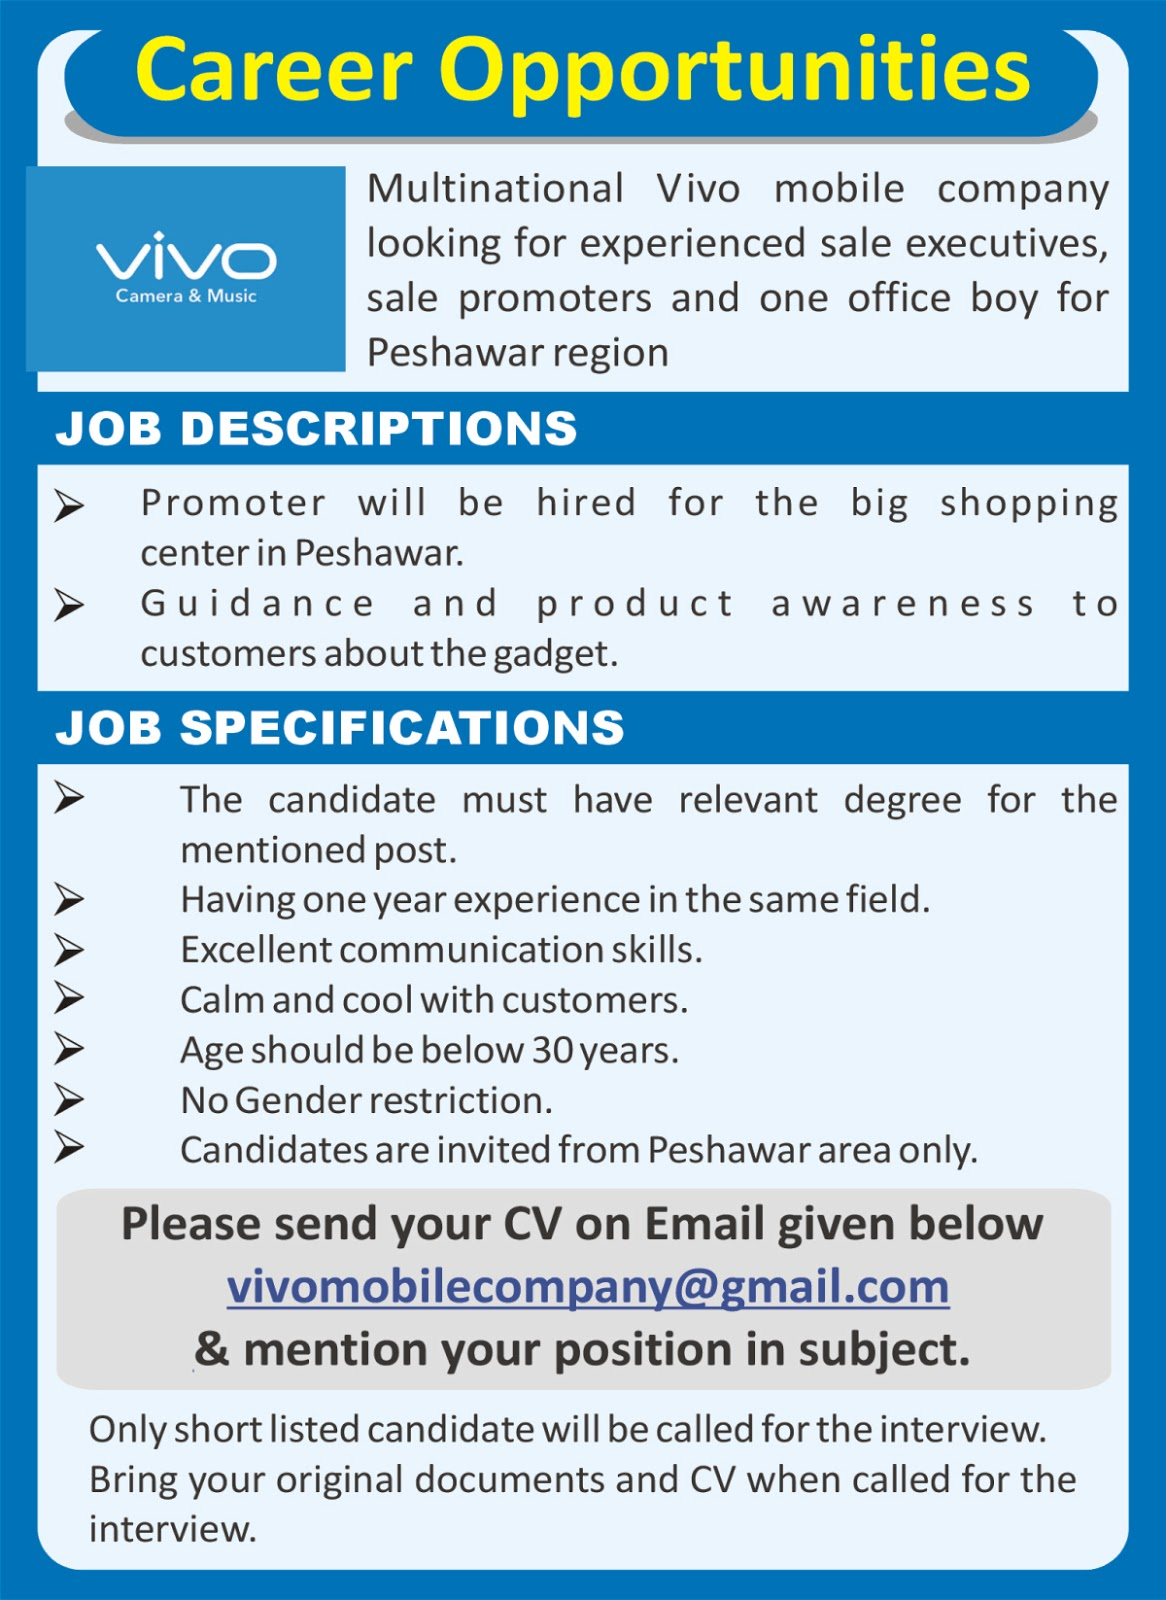 Jobs In Vivo Mobile Limited Company Peshawar 19 May 2017